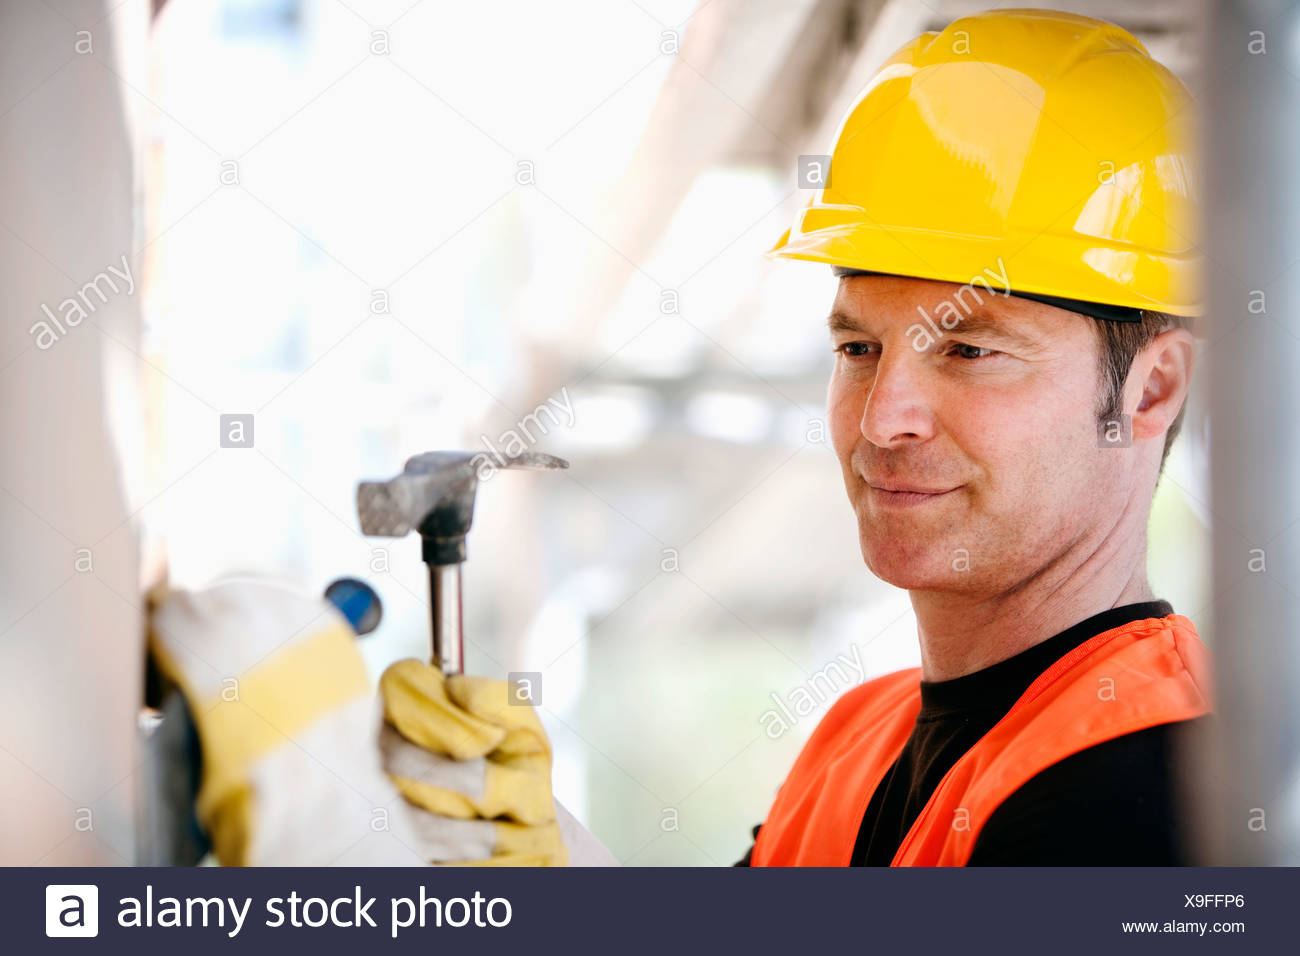 portrait of construction worker using hammer and chisel - Stock Image